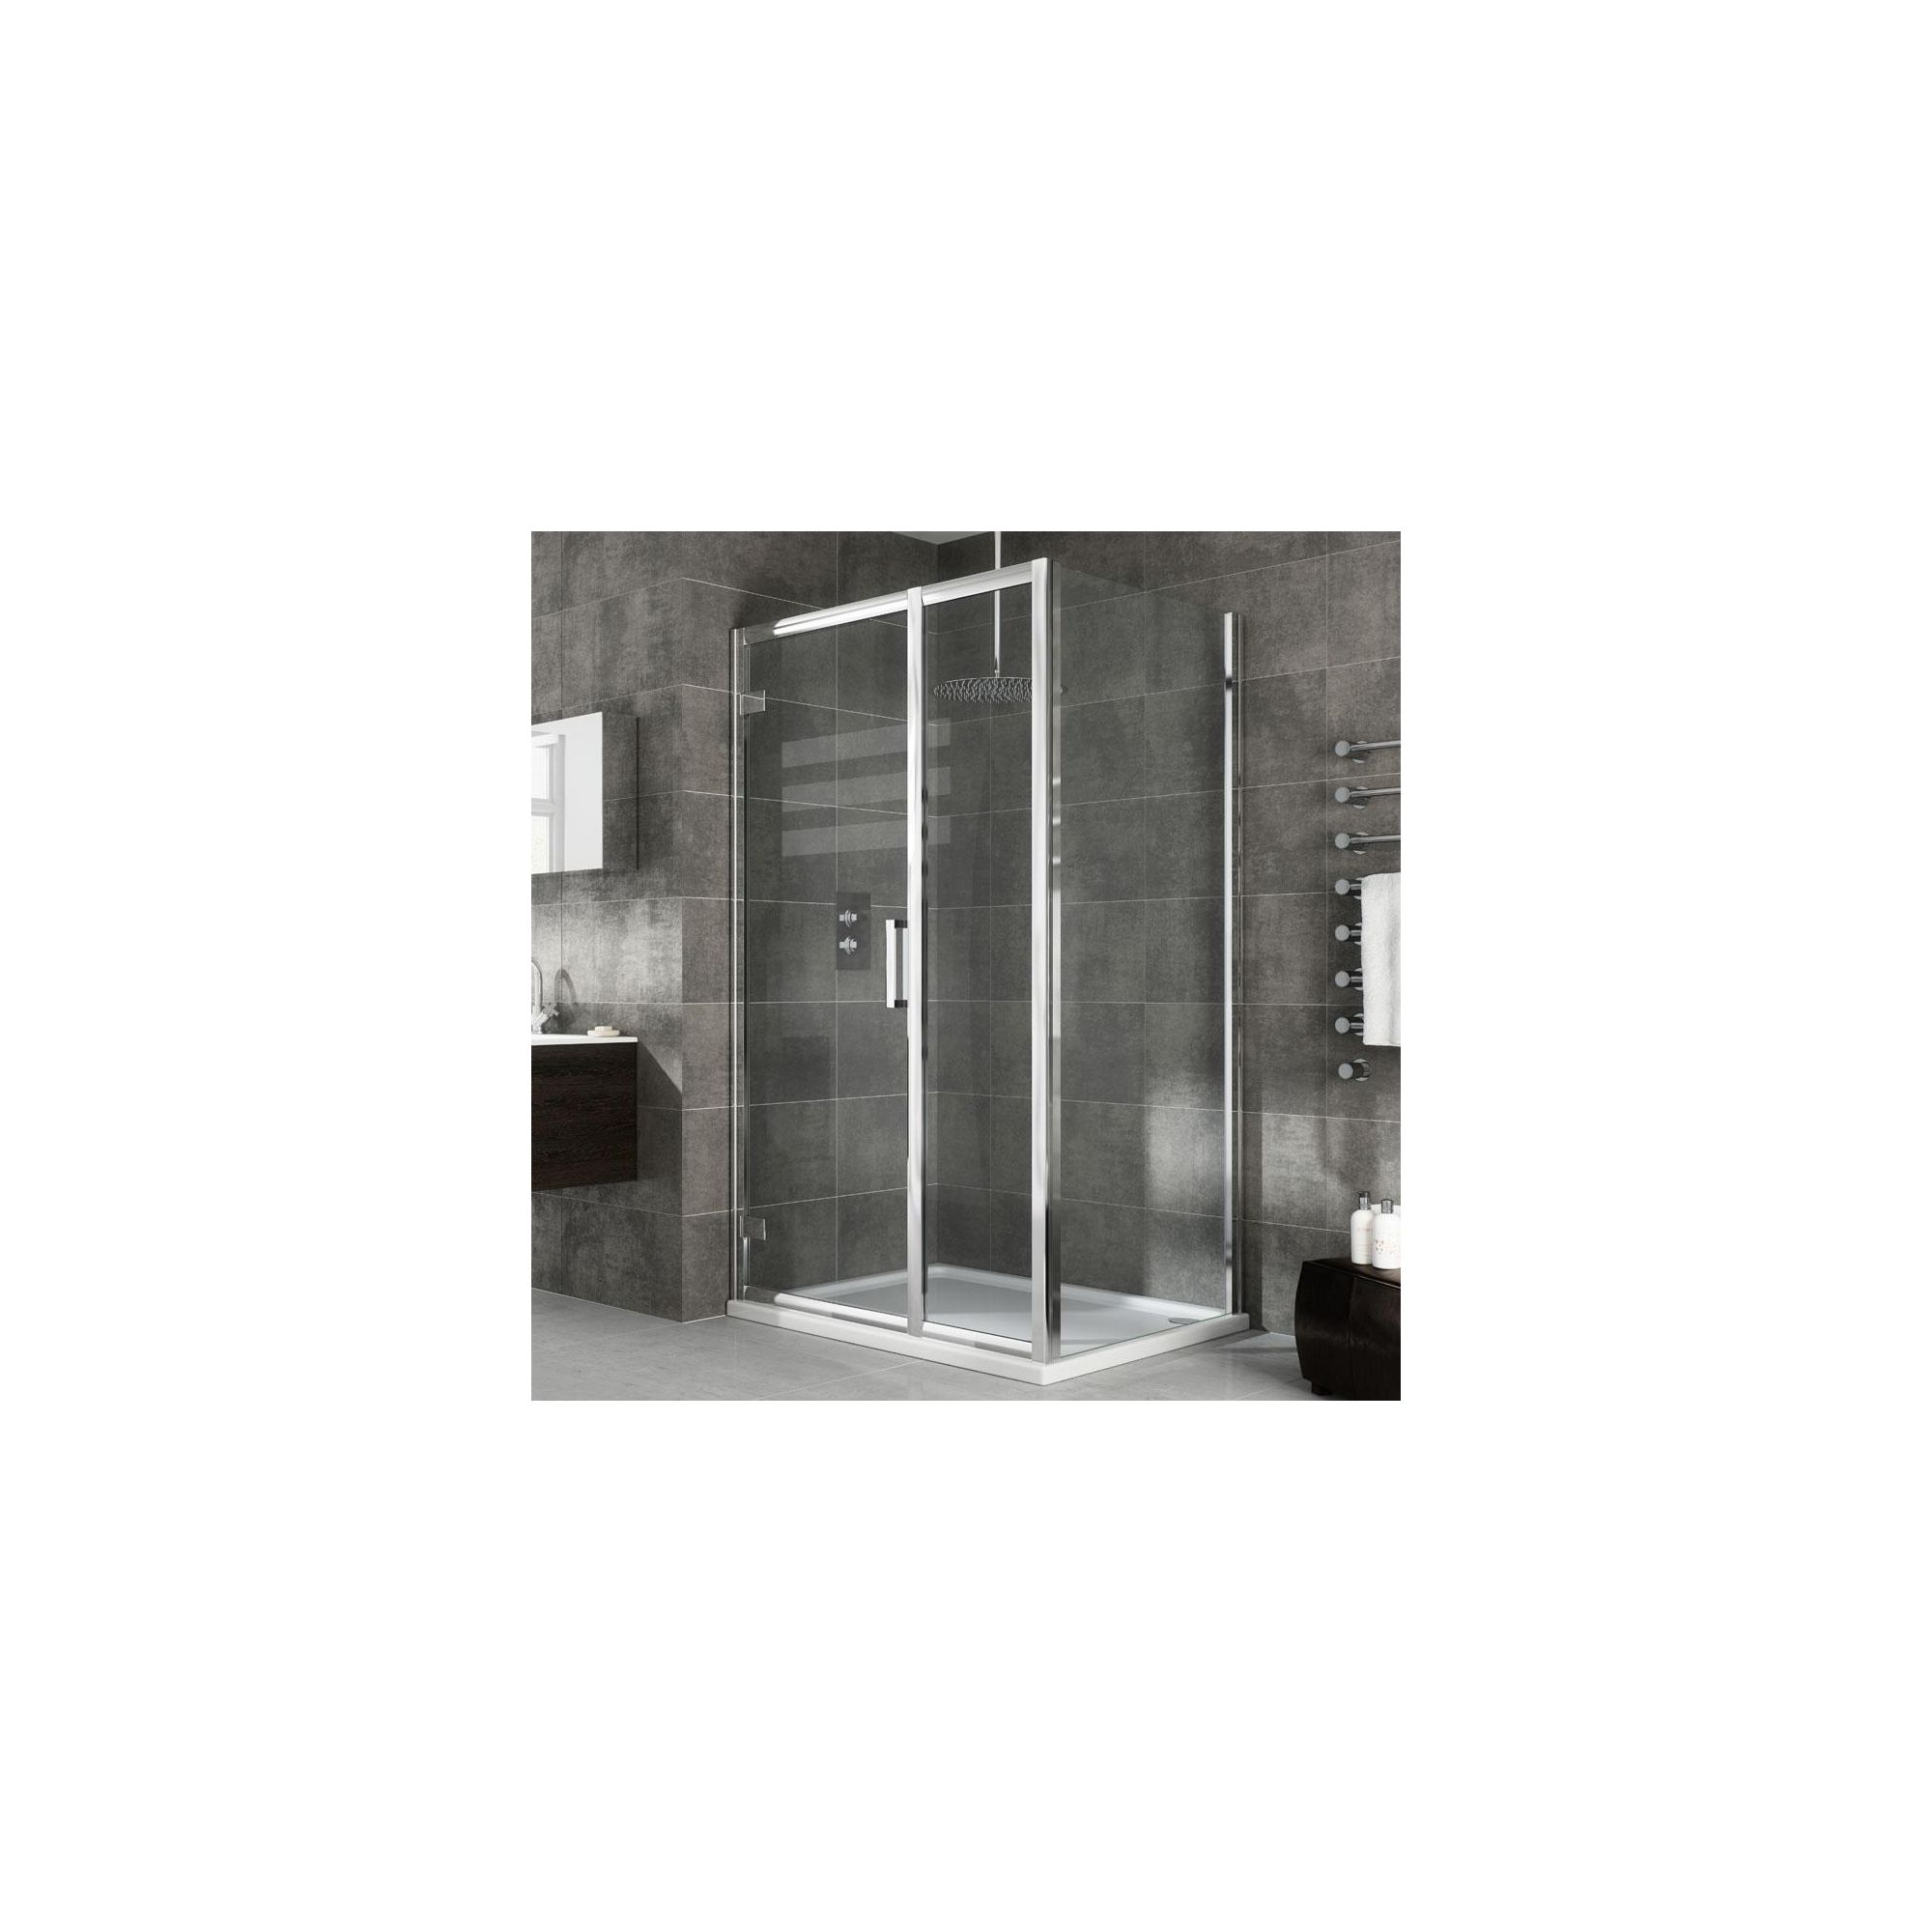 Elemis Eternity Inline Hinged Shower Door, 1100mm Wide, 8mm Glass at Tesco Direct